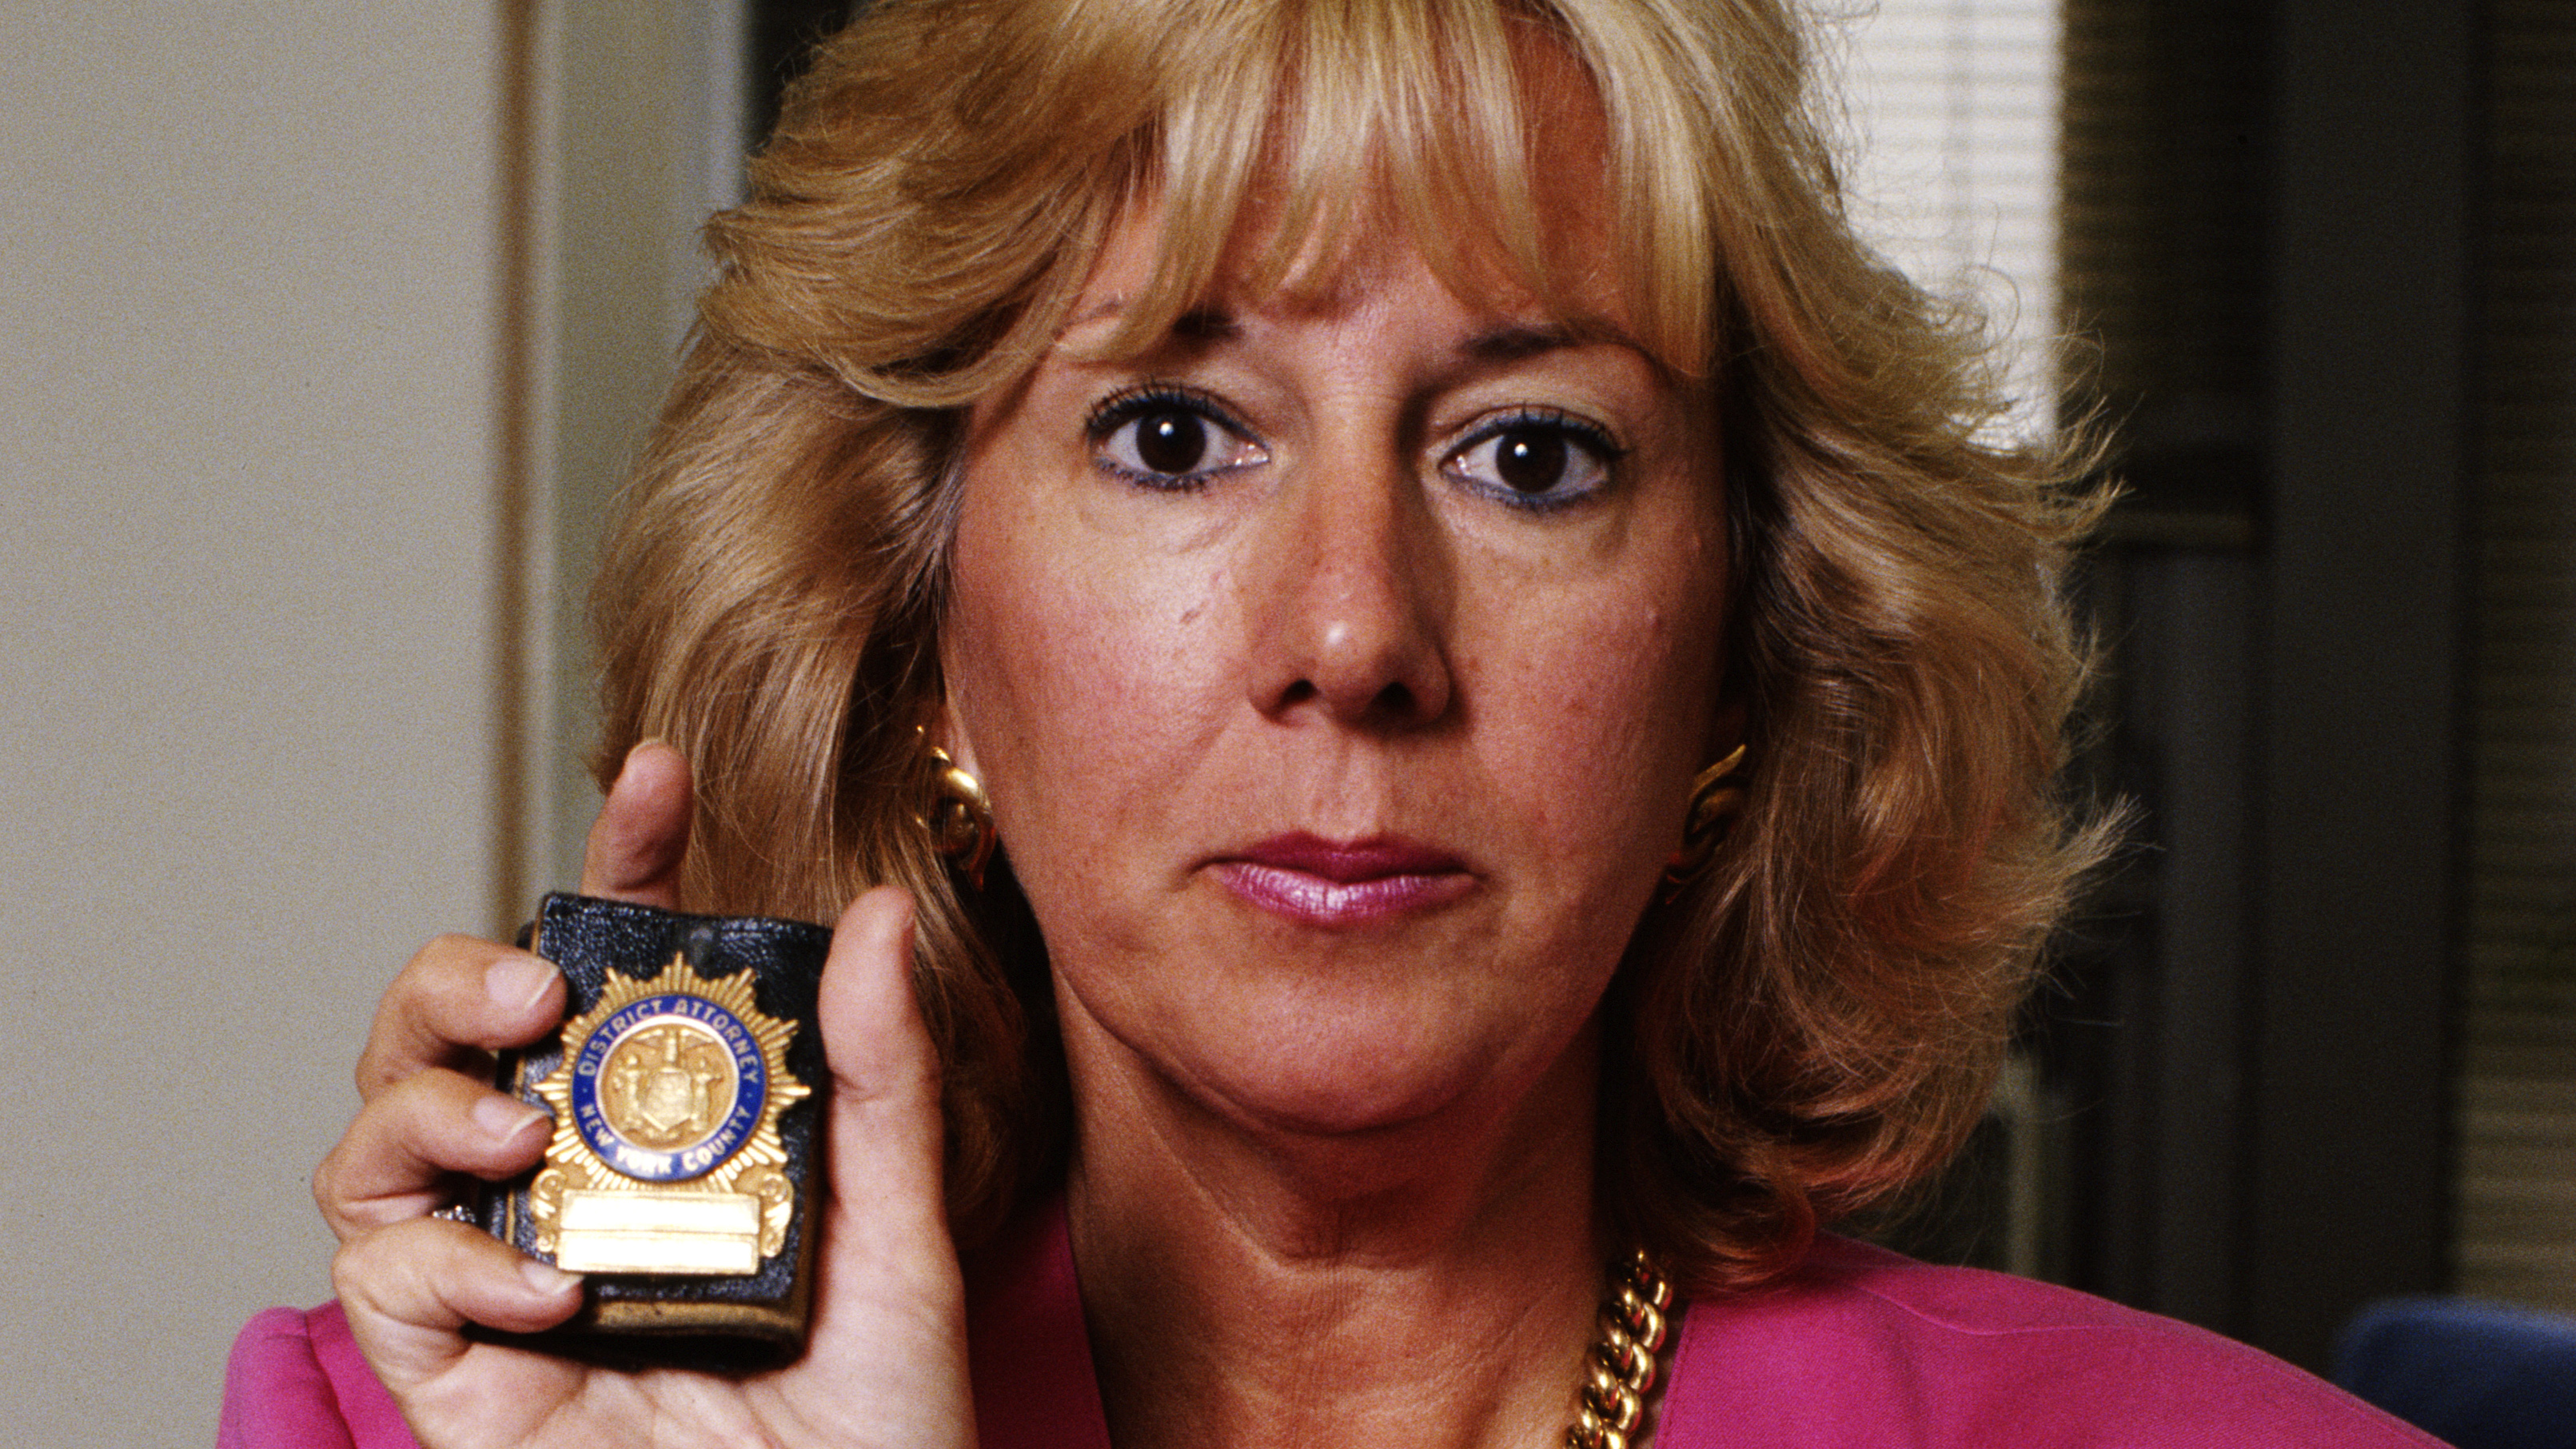 Former Sex Crimes Prosecutor Linda Fairstein on the Case That Keeps Her Up at Night